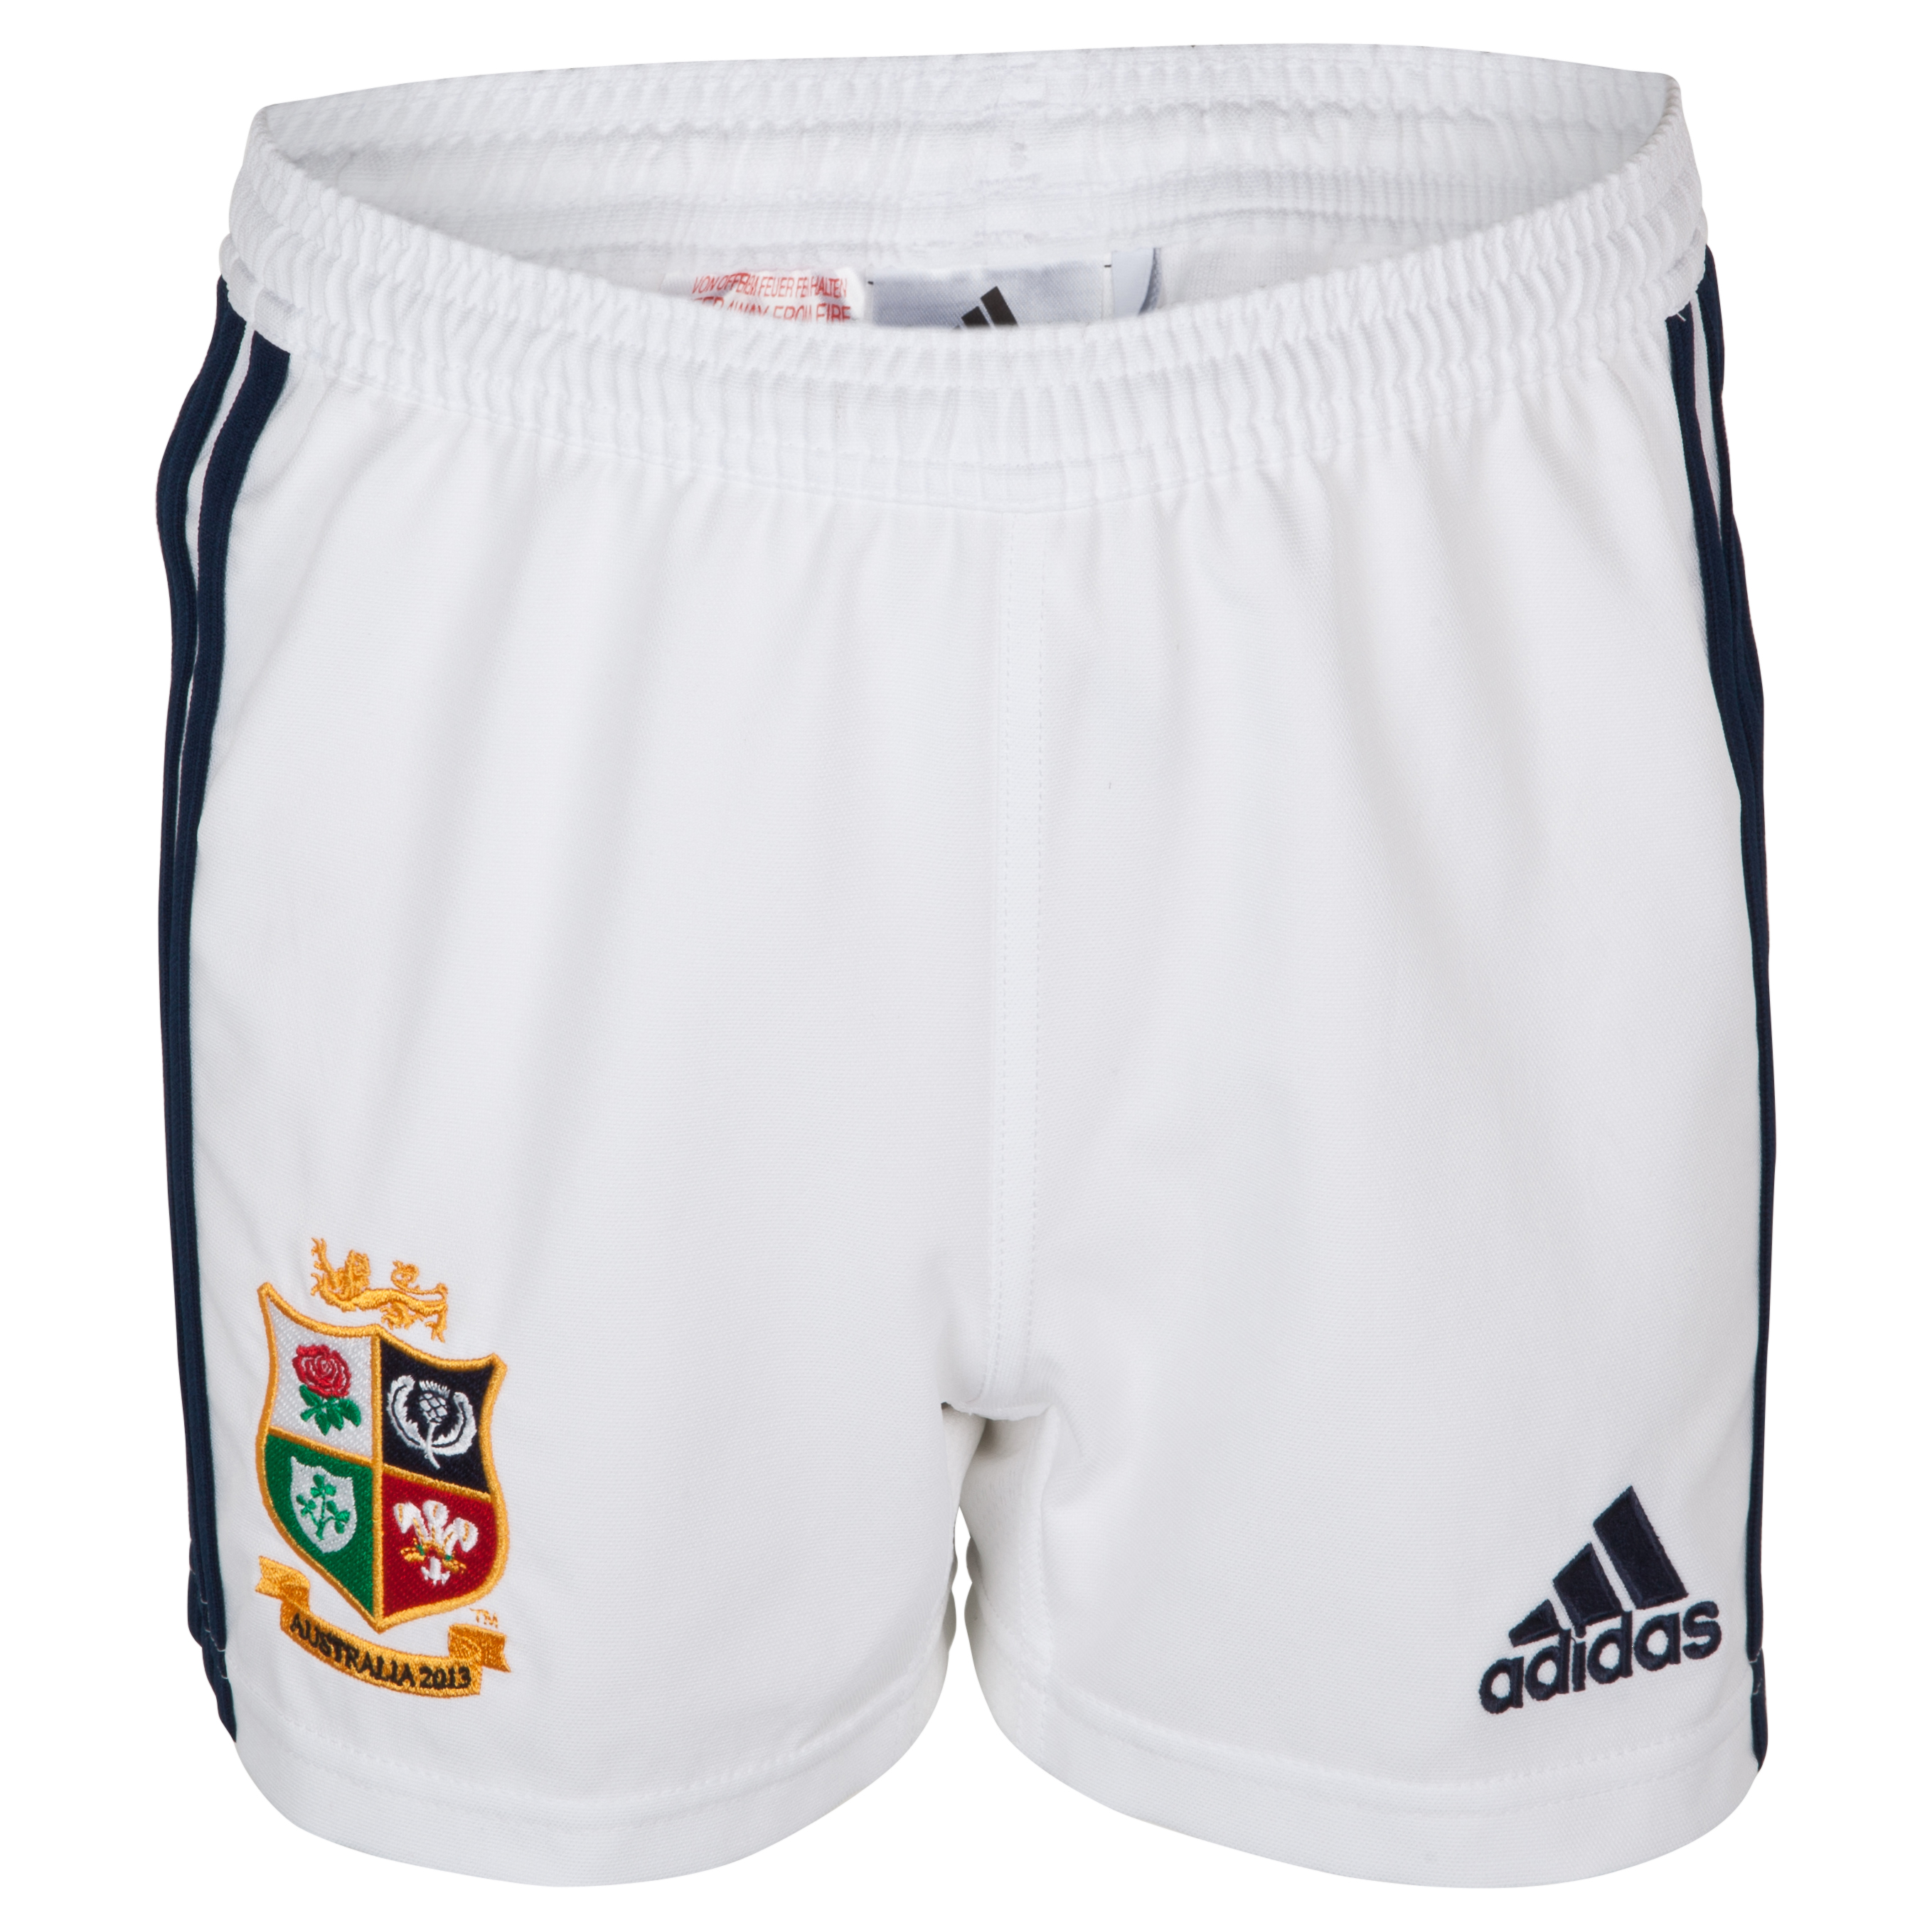 adidas British and Irish Lions Home Shorts 2013  - Youths